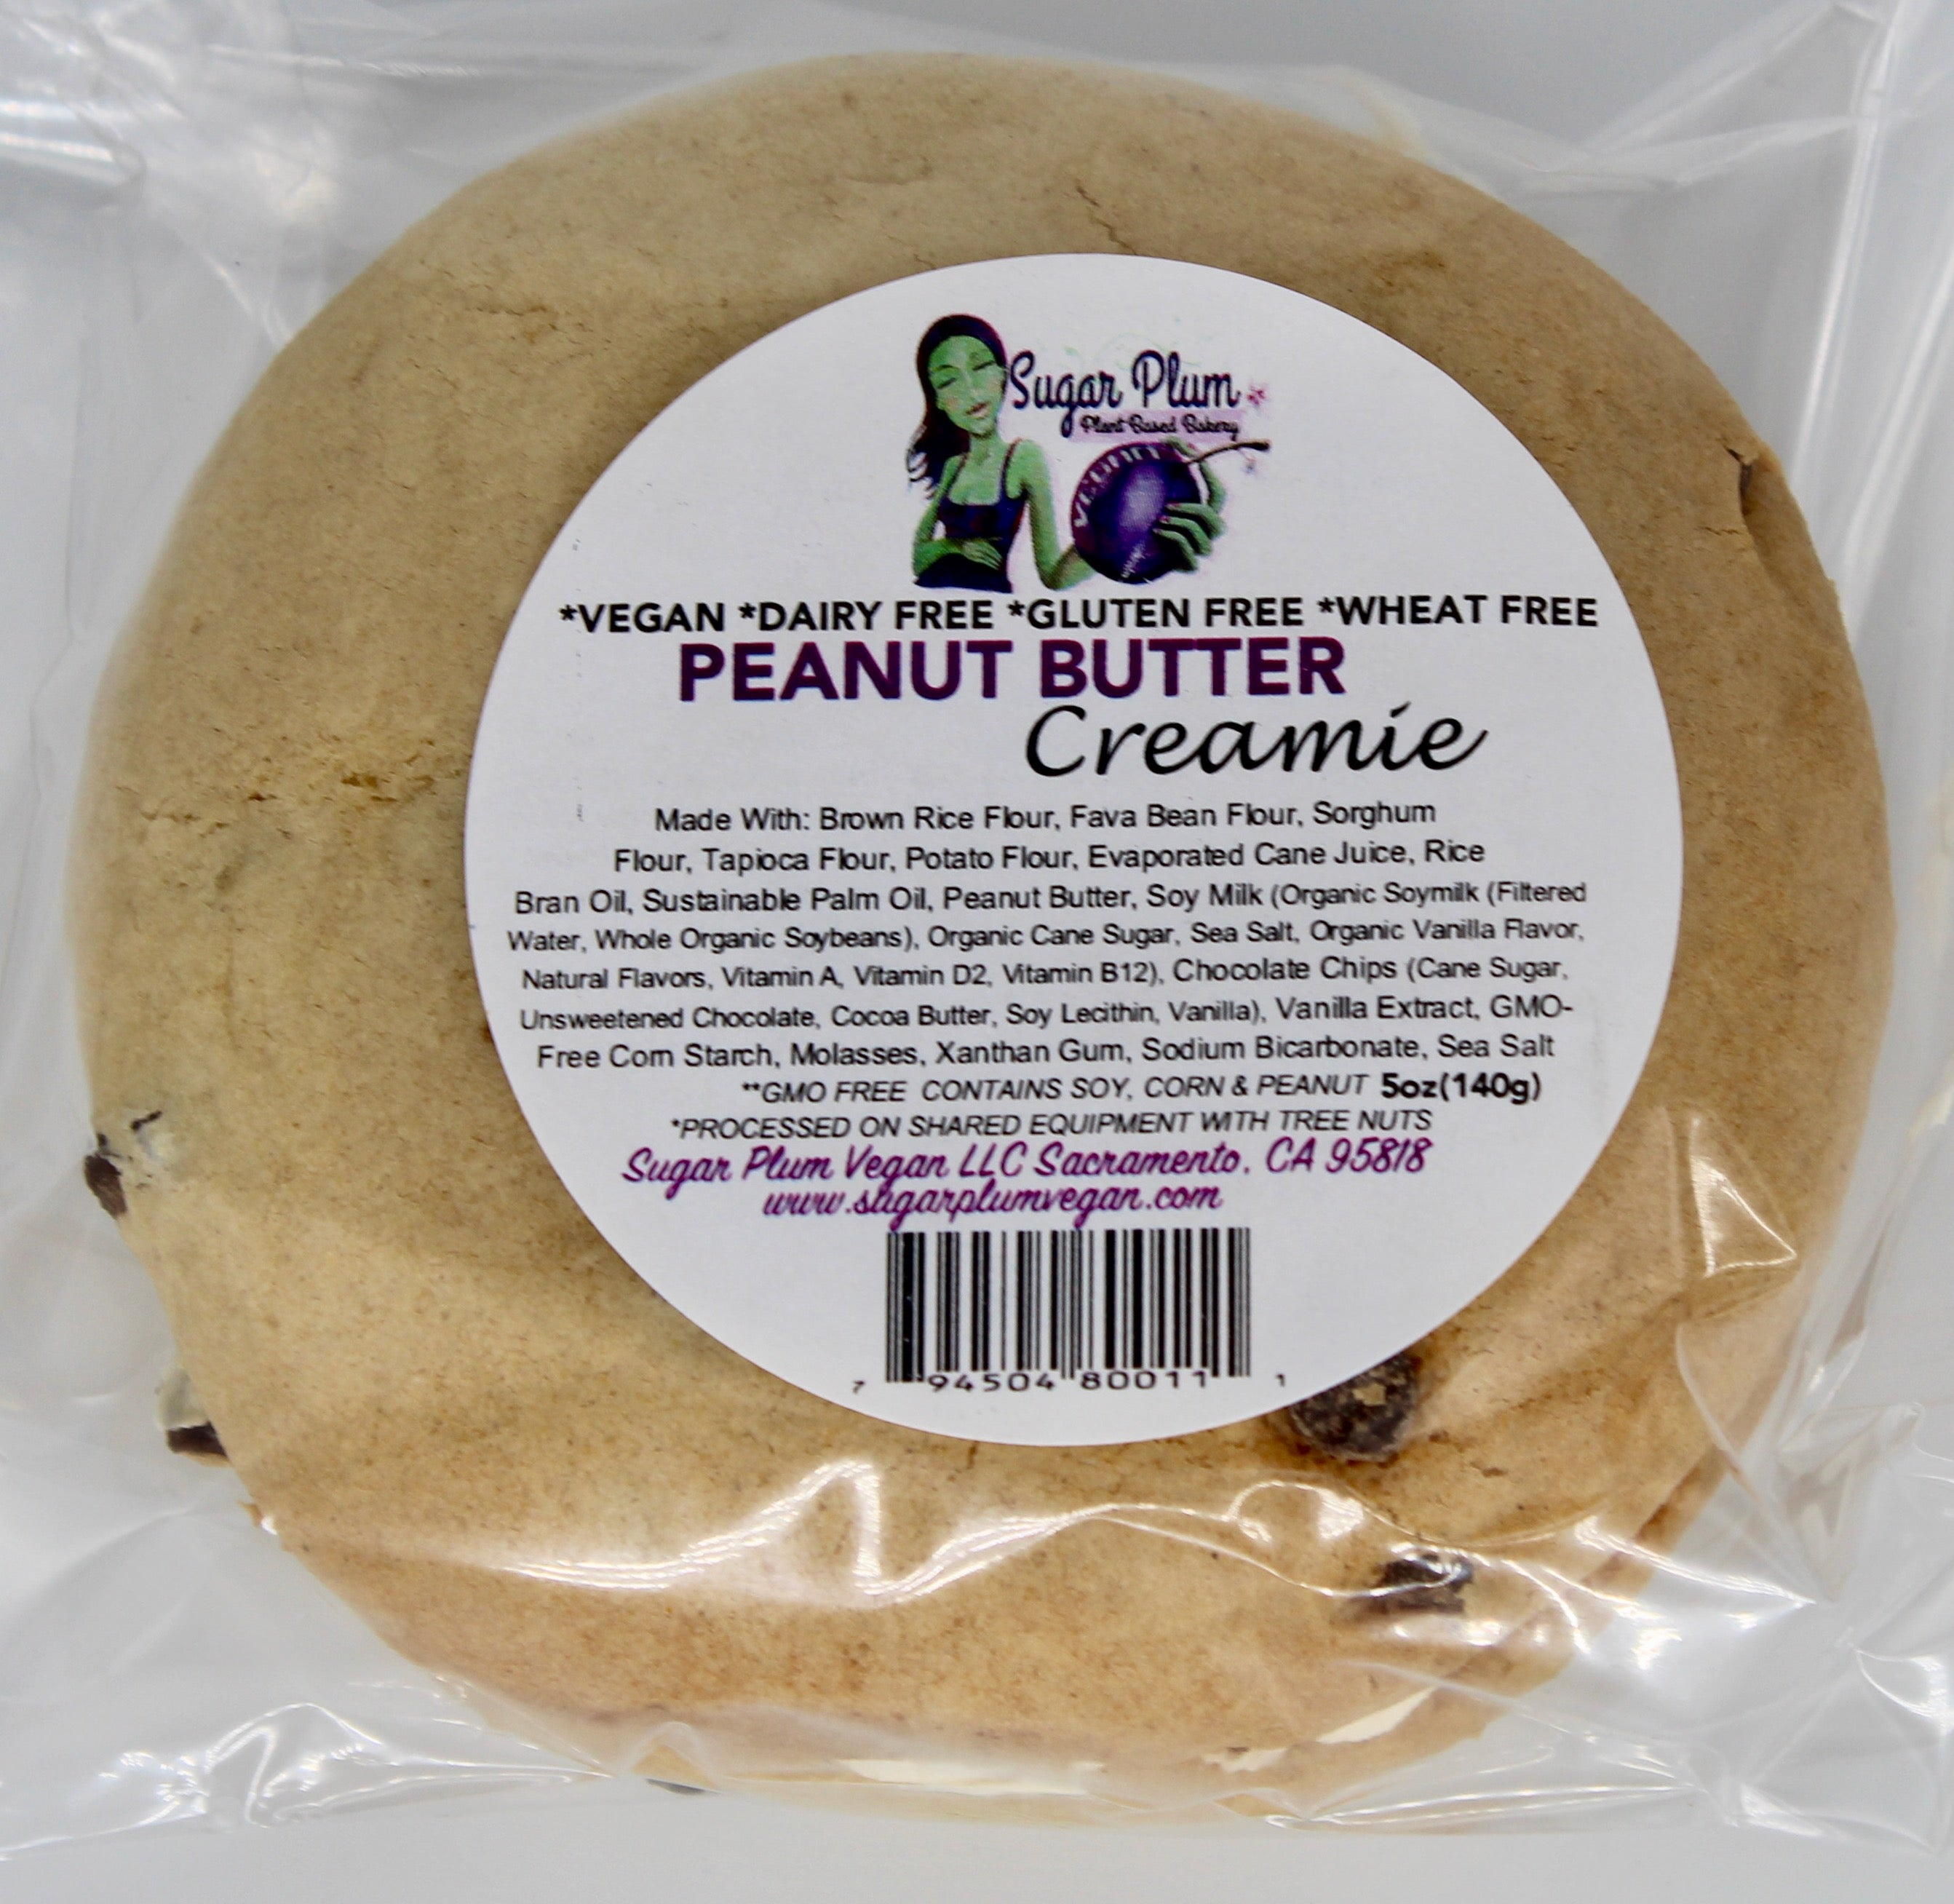 Peanut Butter Creamie-VARIOUS PACK OPTIONS-(Vegan, Gluten Free)